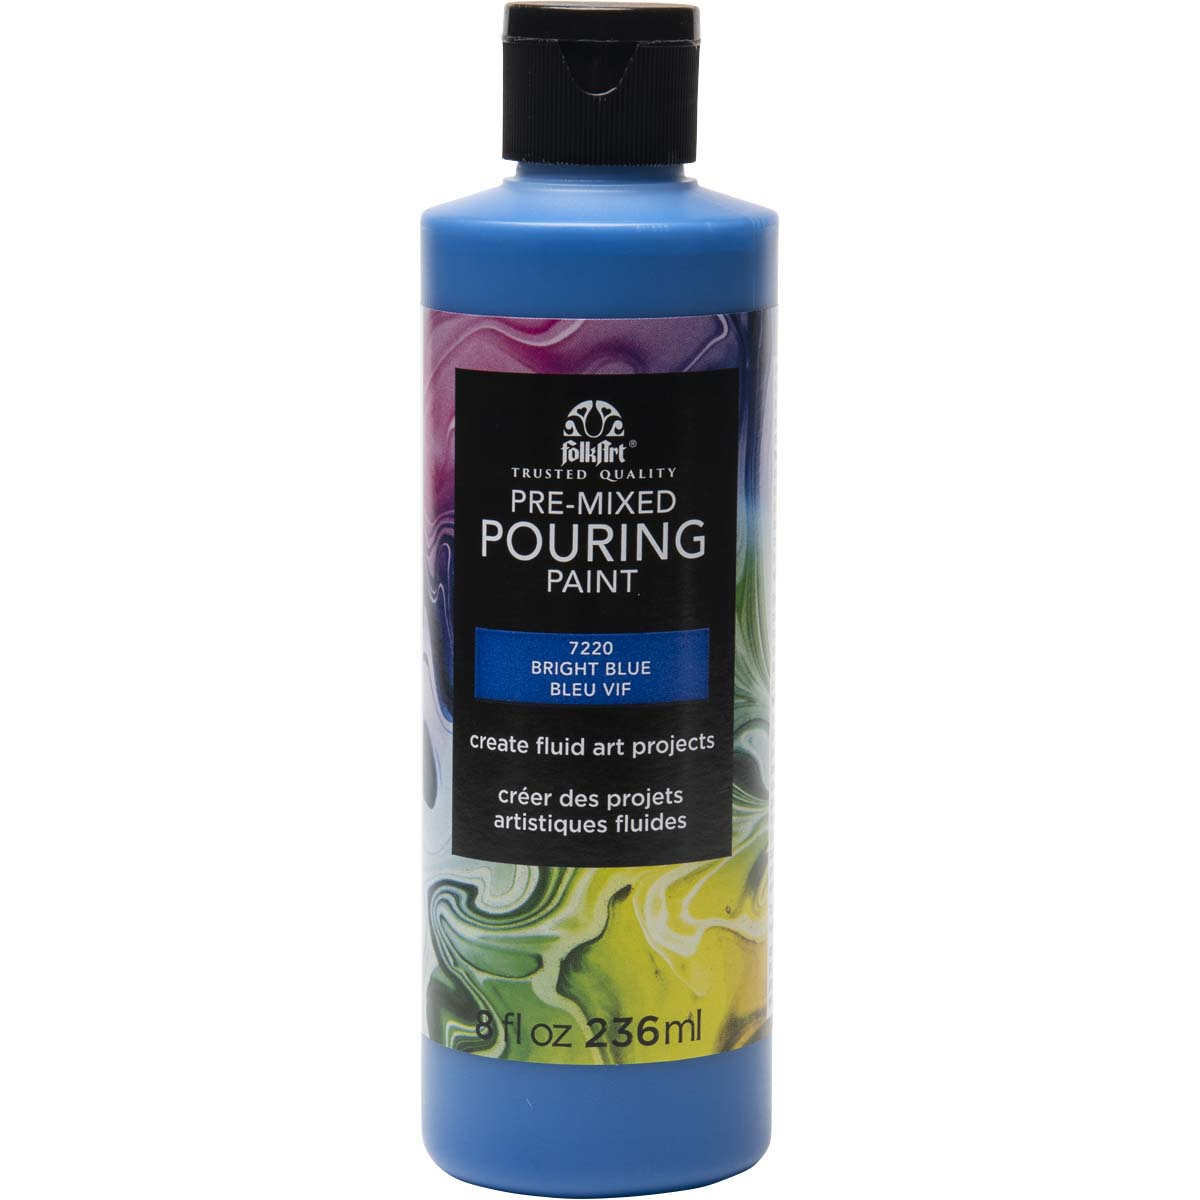 FolkArt ® Pre-mixed Pouring Paint - Bright Blue, 8 oz. - 7220